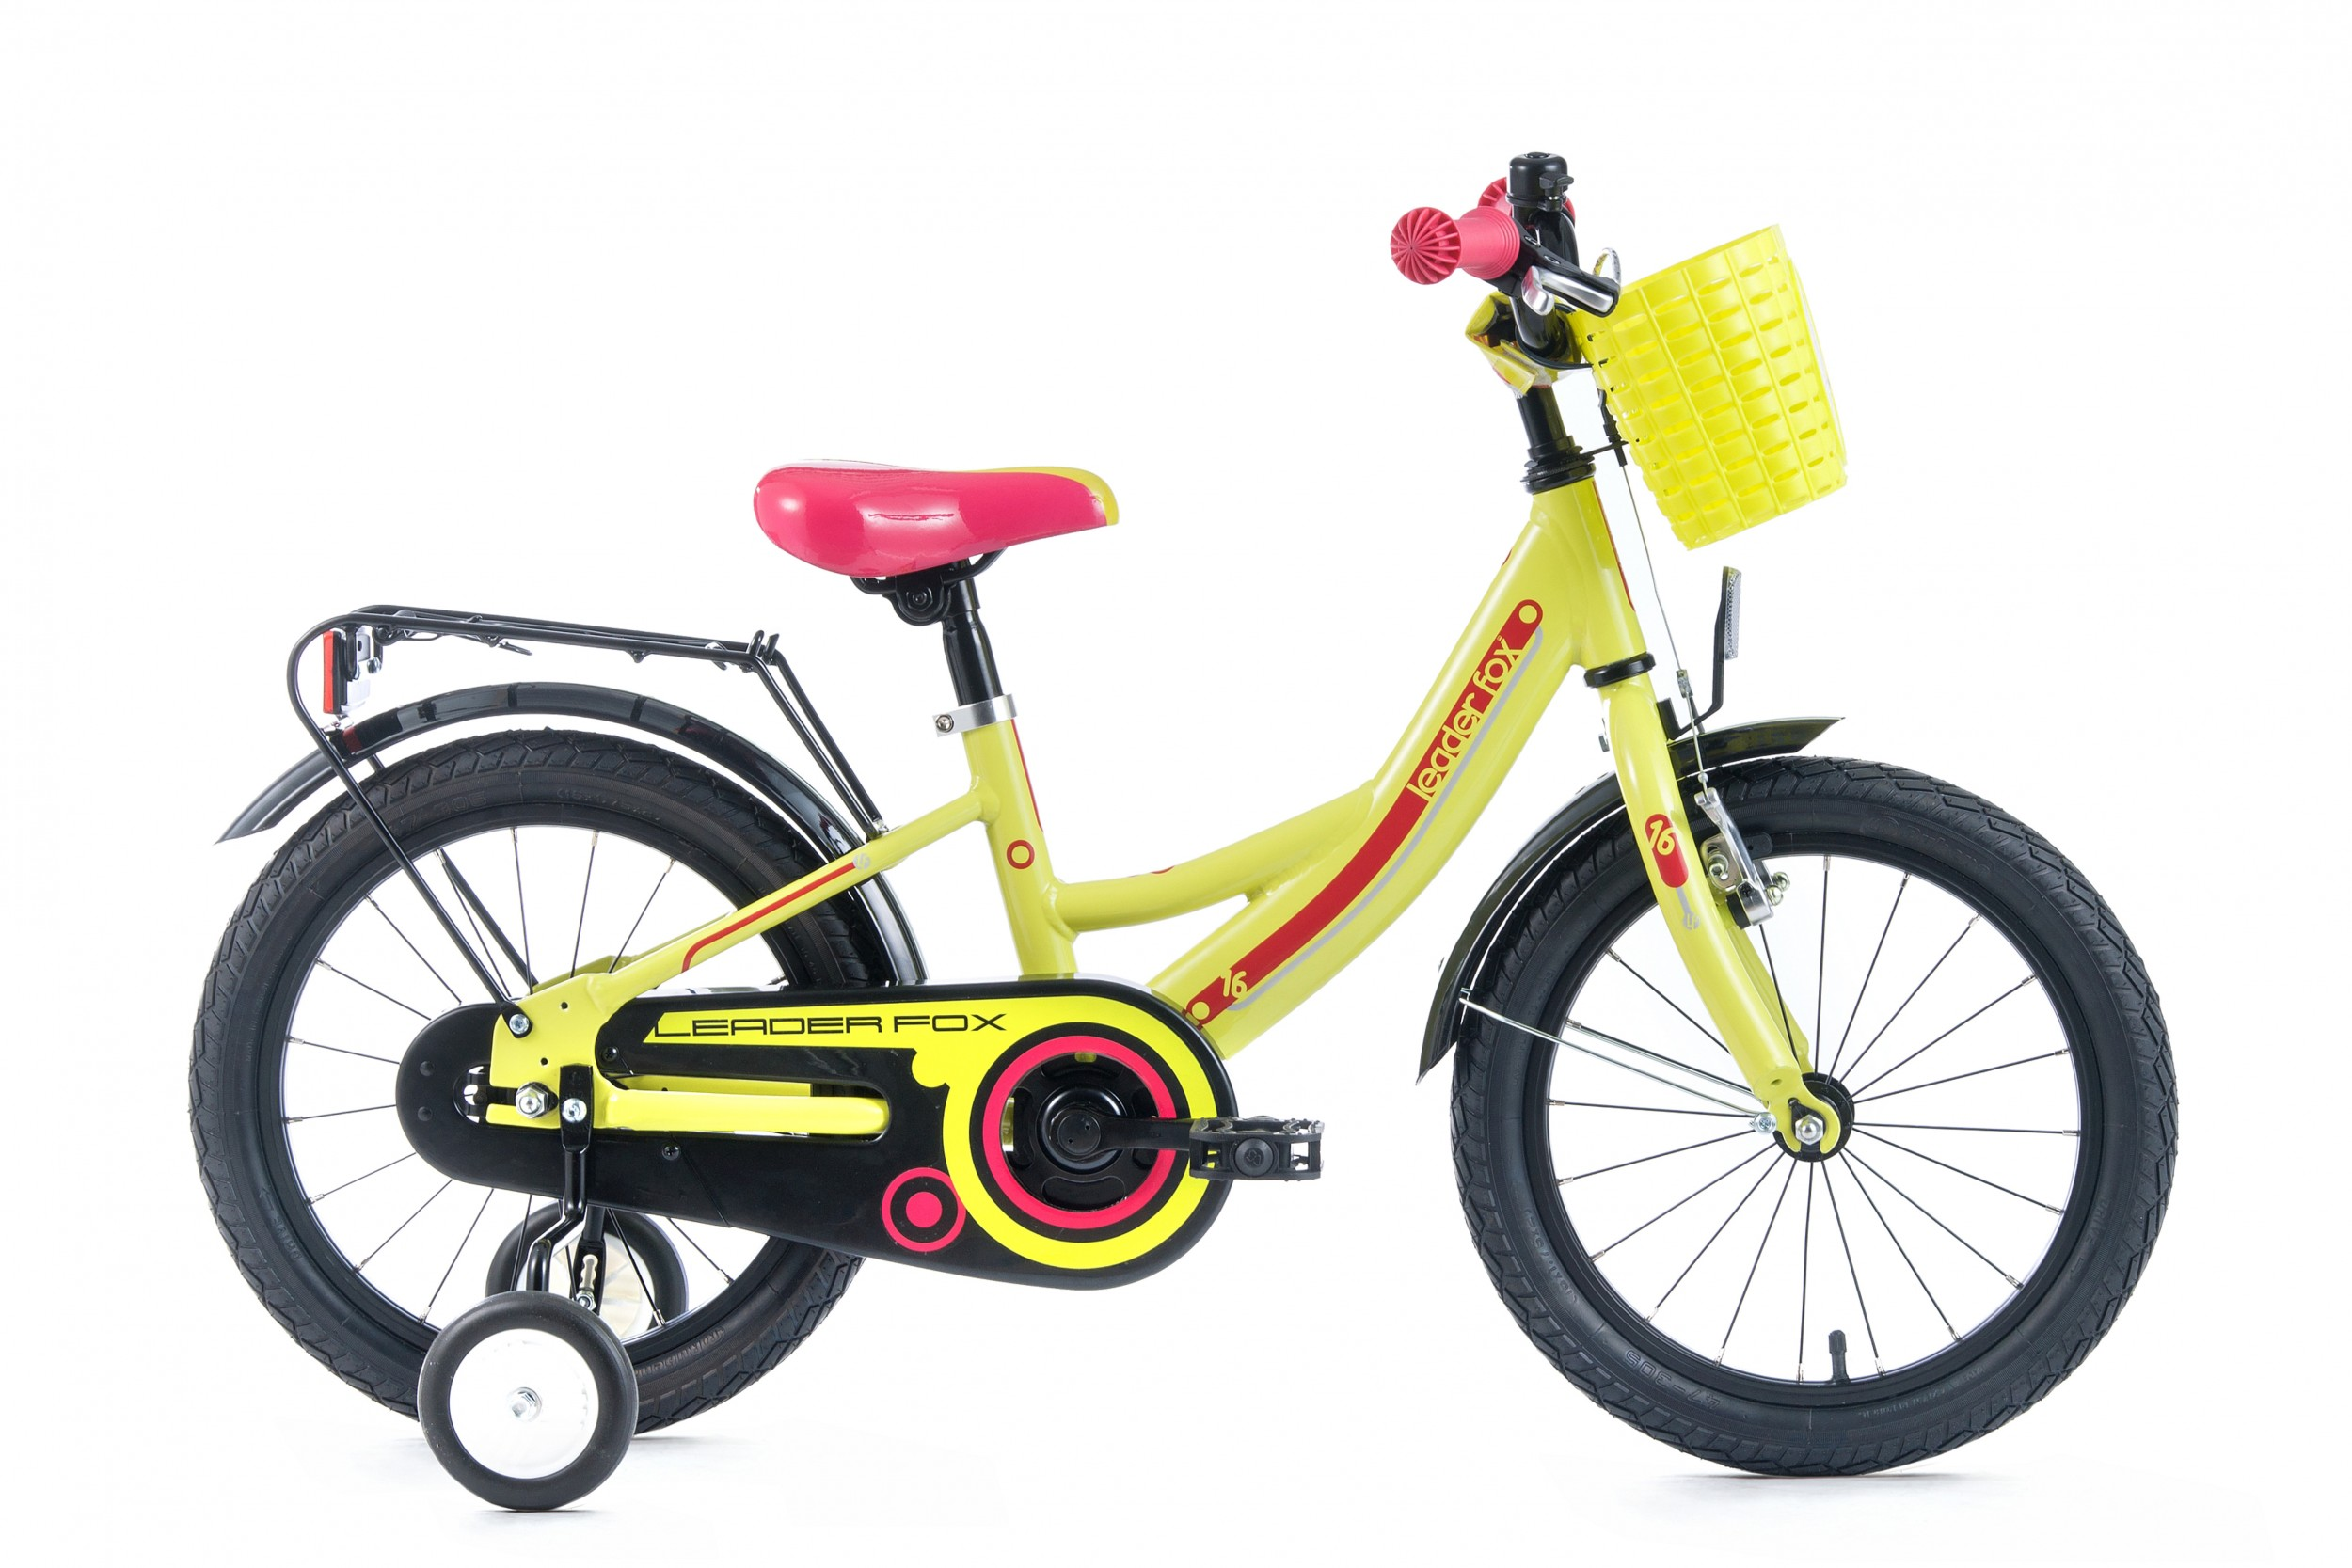 Leader Fox Busby Girls Bicycle 16 Inch 23cm - Green